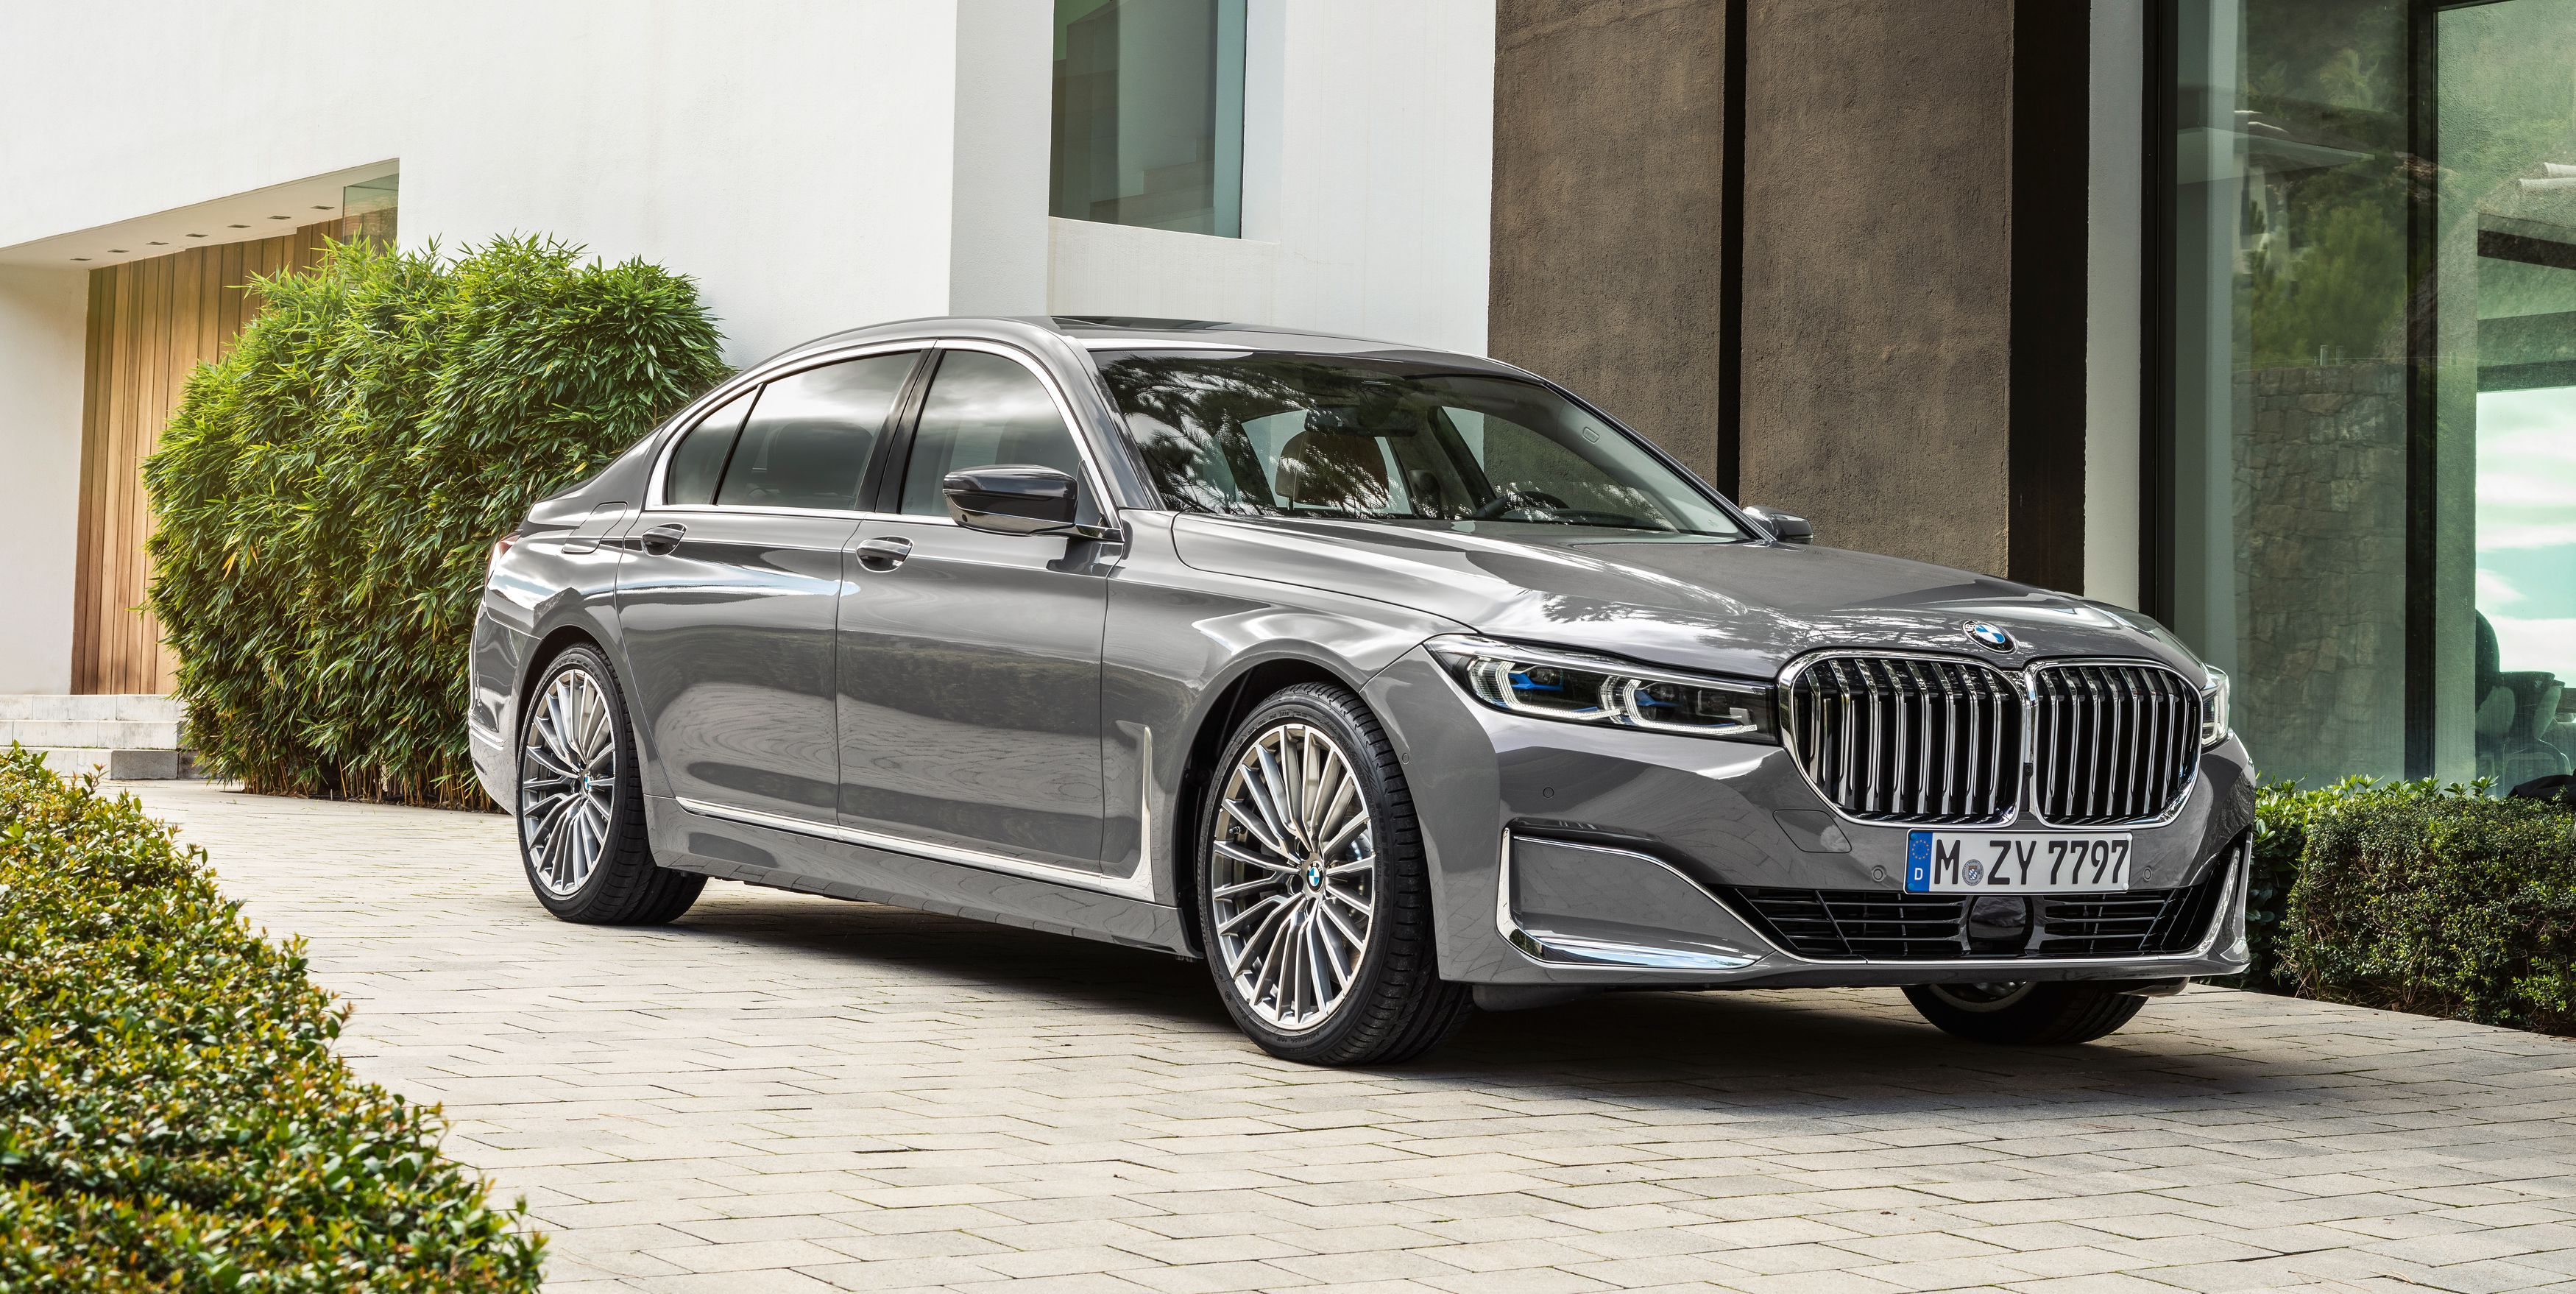 2020 Bmw 7 Series Updated Bigger Grille Revised Engines More Tech